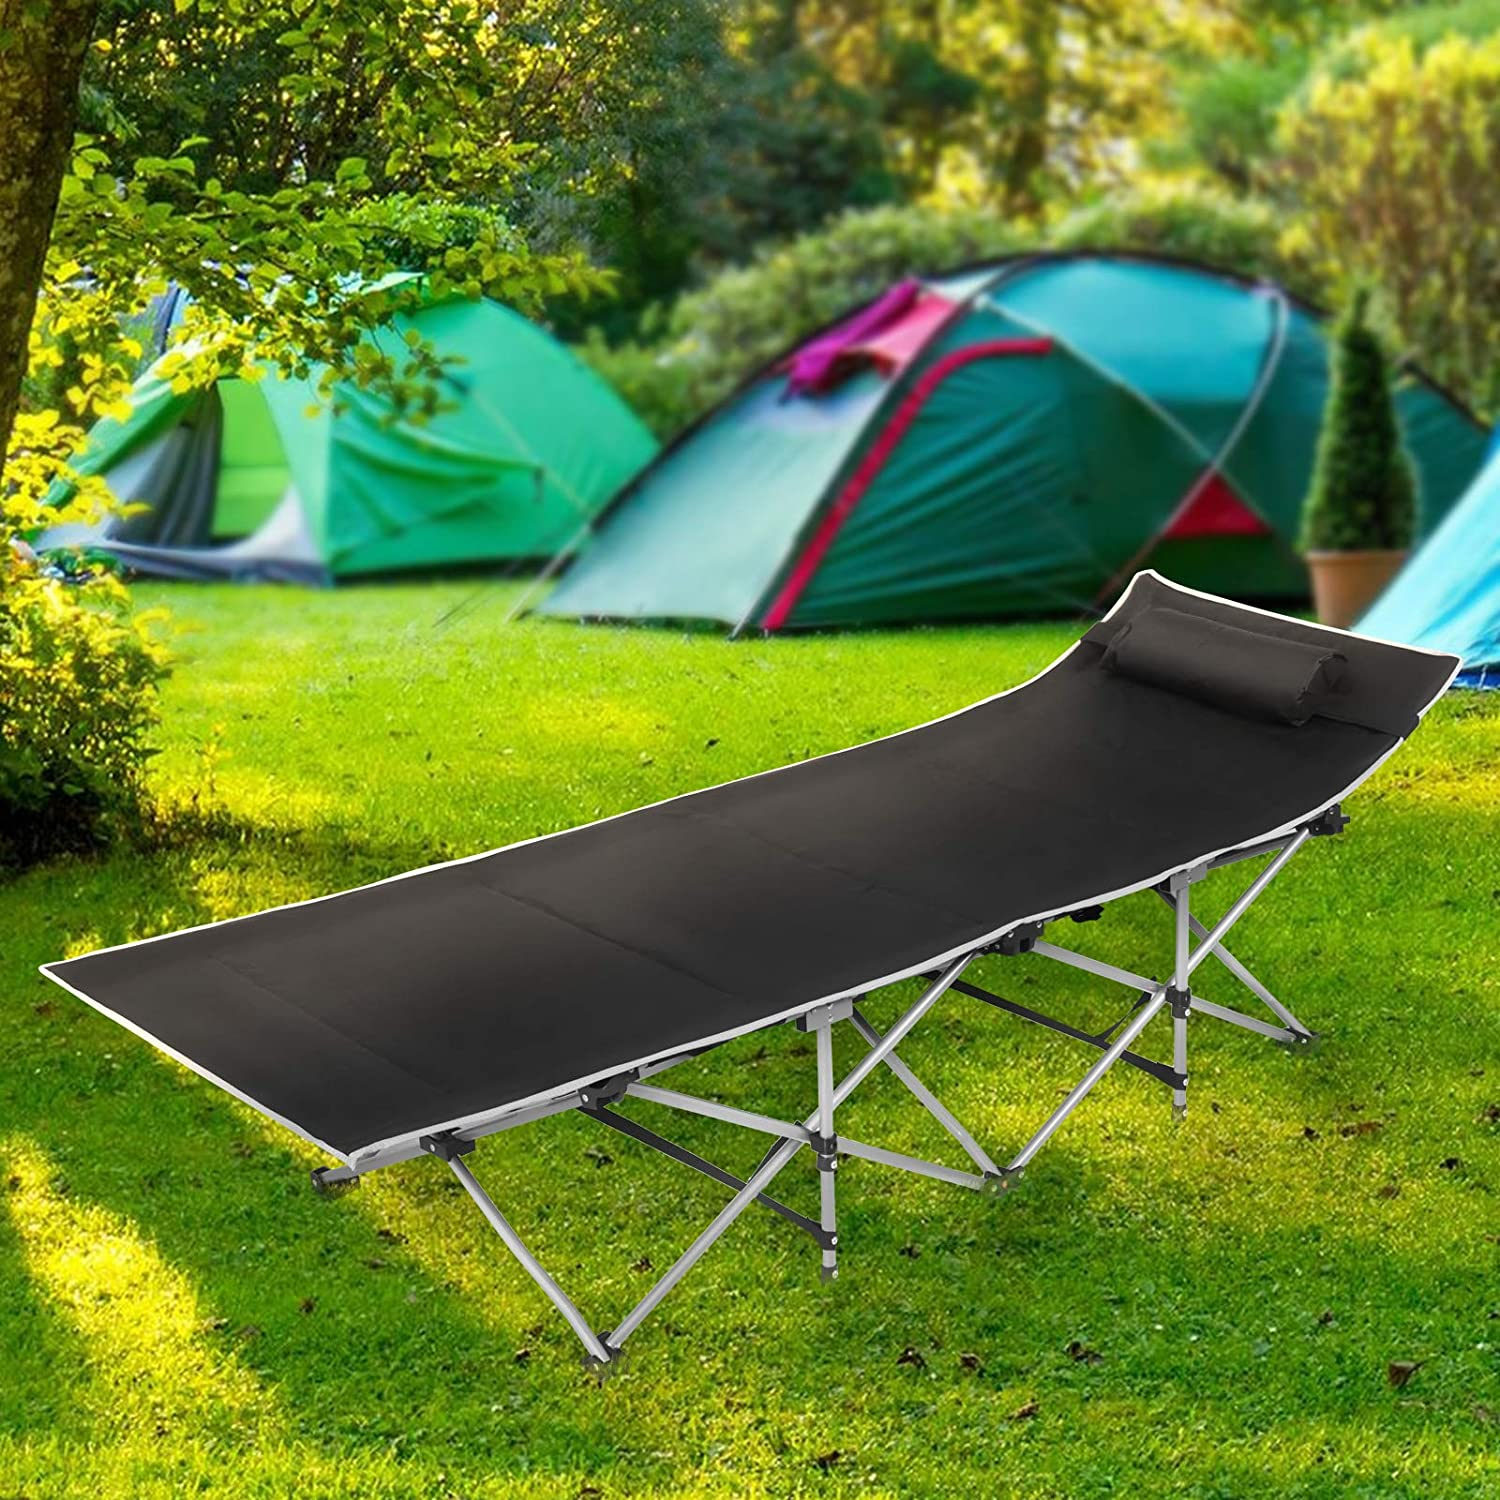 Yellow Green Folding Sleeping Camping Cot 450 lbs Max, Bed w/Pillow and Side Pocket Portable Design Comfort Small Collapsing Sleeping Bed- Outdoor Traveling Picnic for Adults